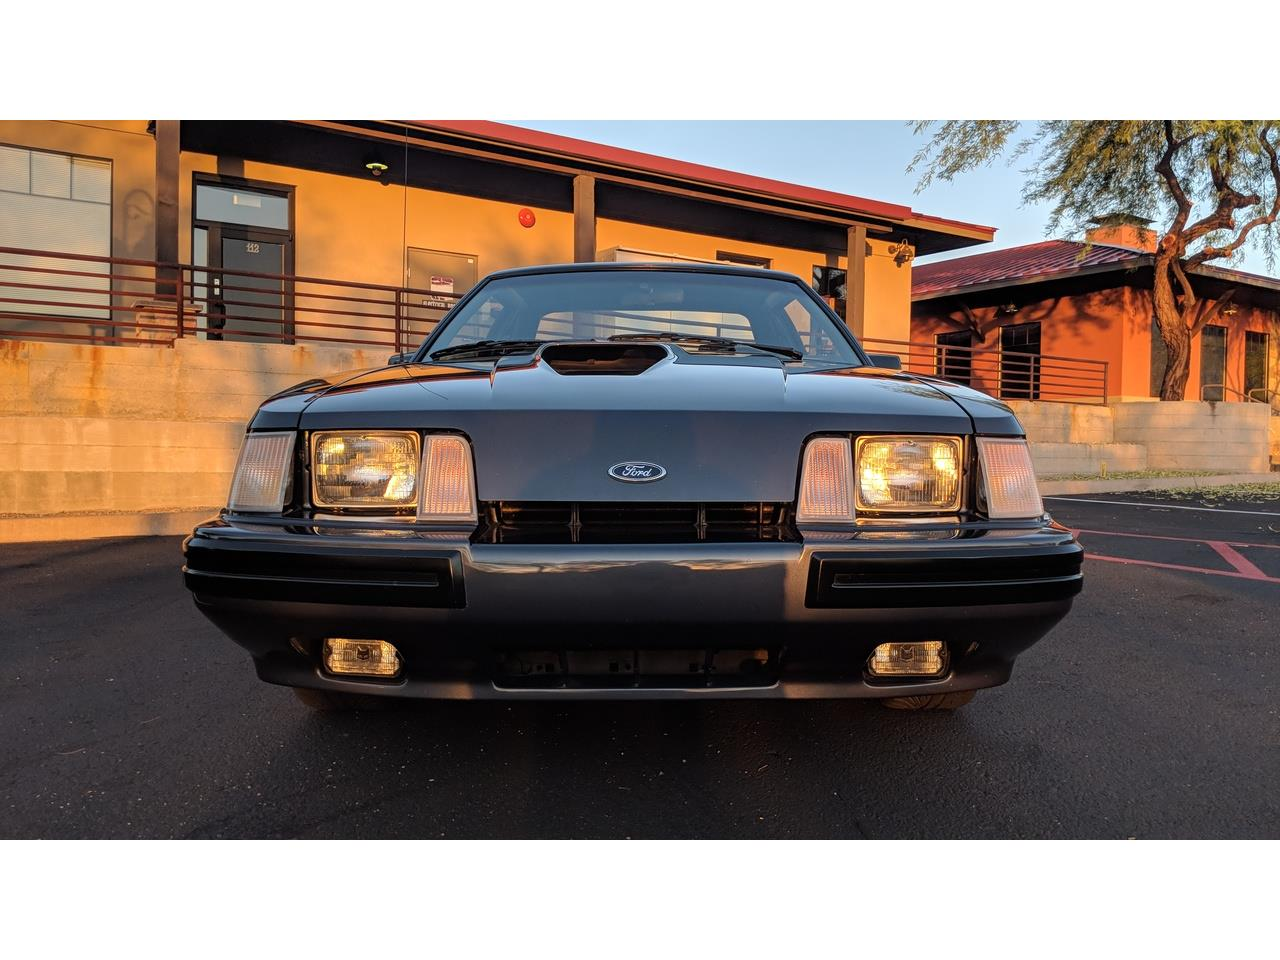 Large Picture of '84 Mustang SVO located in North Phoenix Arizona - $15,800.00 Offered by a Private Seller - MXZ6